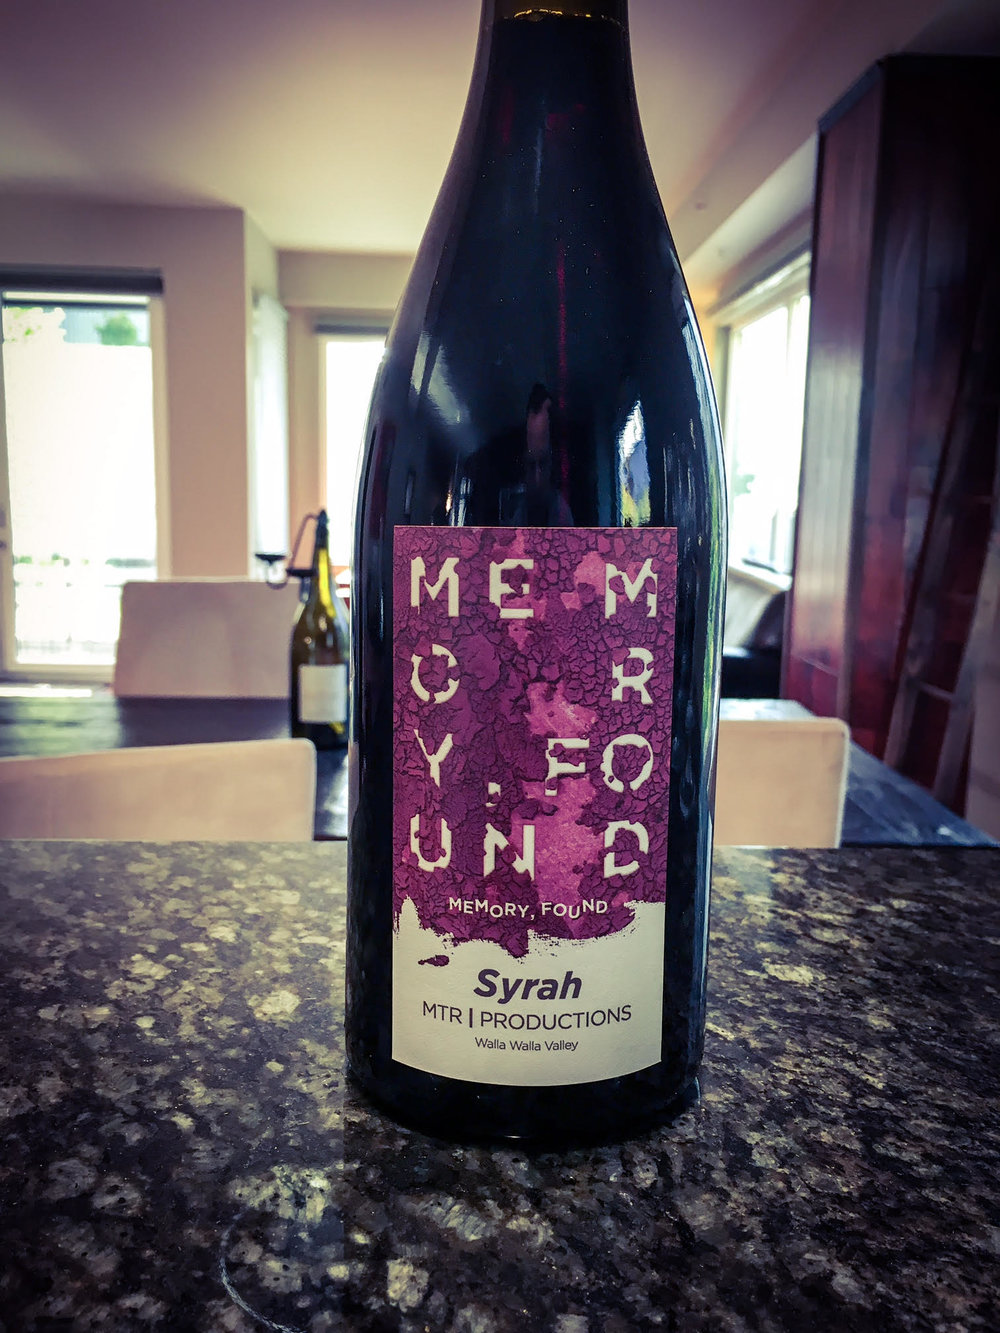 The 2012 MTR Productions 'Memory Found' Syrah (WWB, 95) is a stunning wine made by Matt Reynvaan.